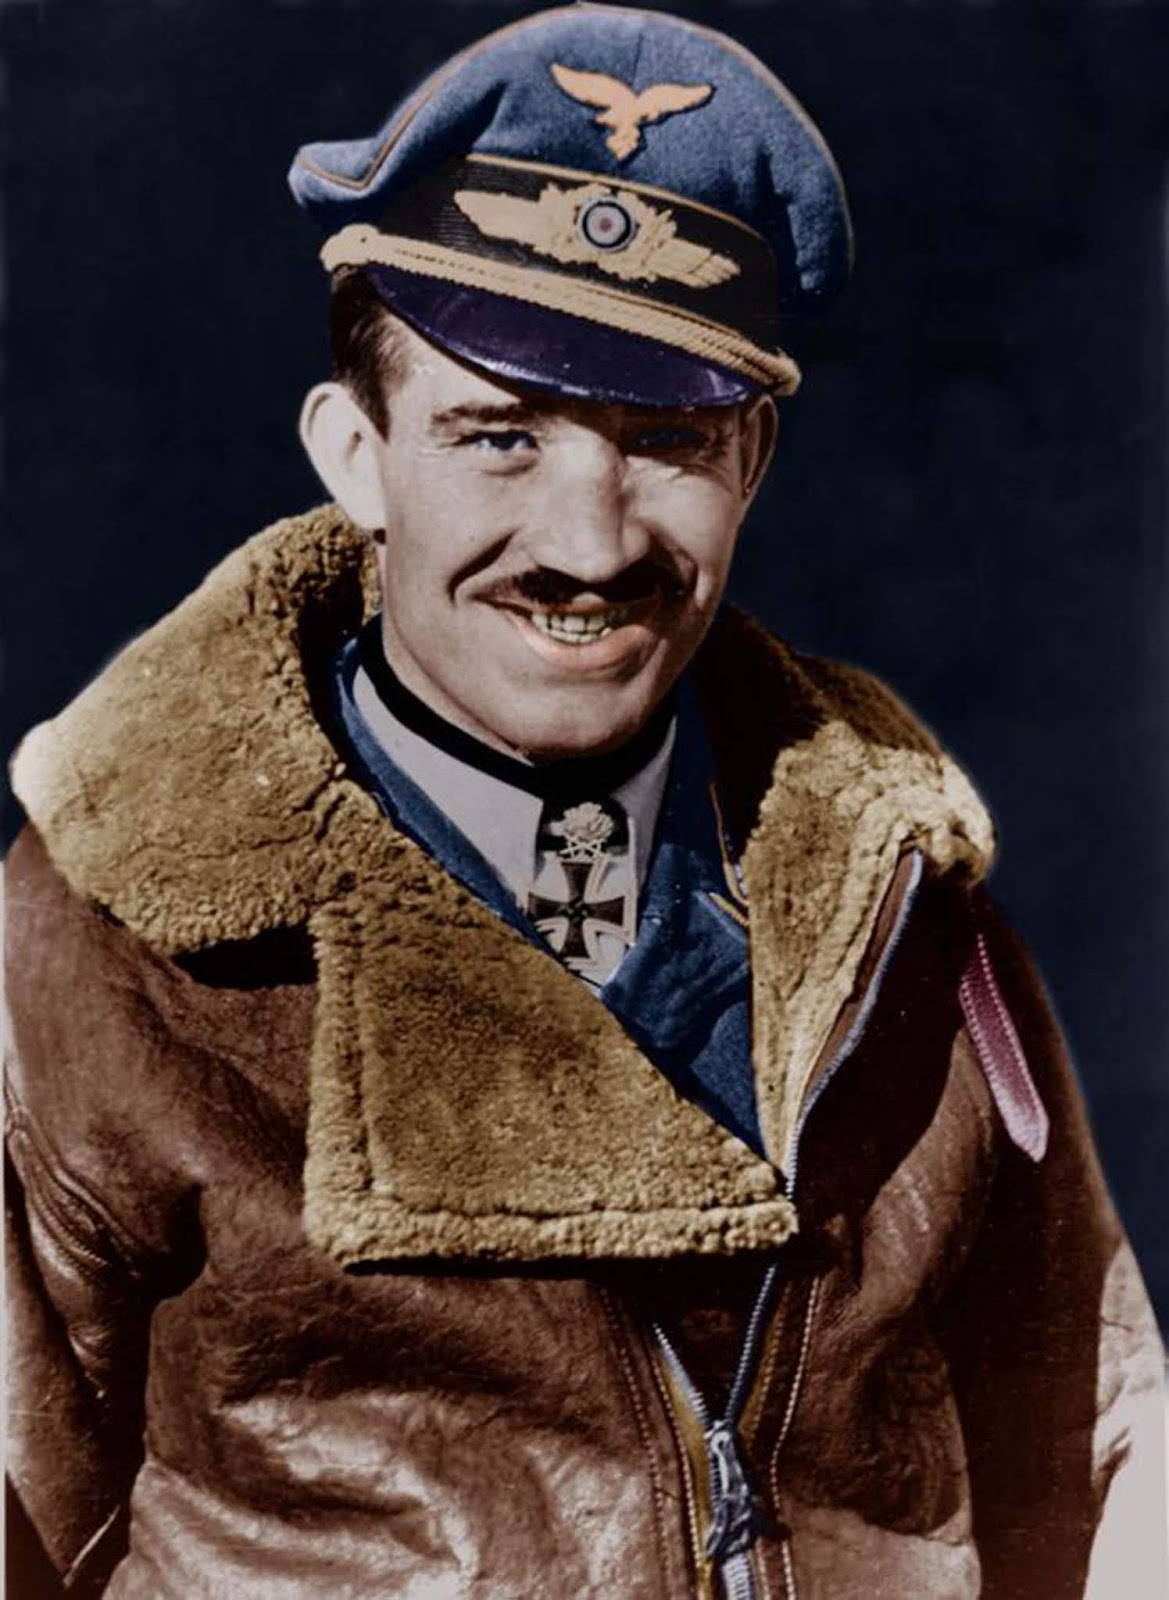 Adolf Galland looks so awesome in his bomber jacket - and that goofy grin shows why he was dynamite with the ladies, too.